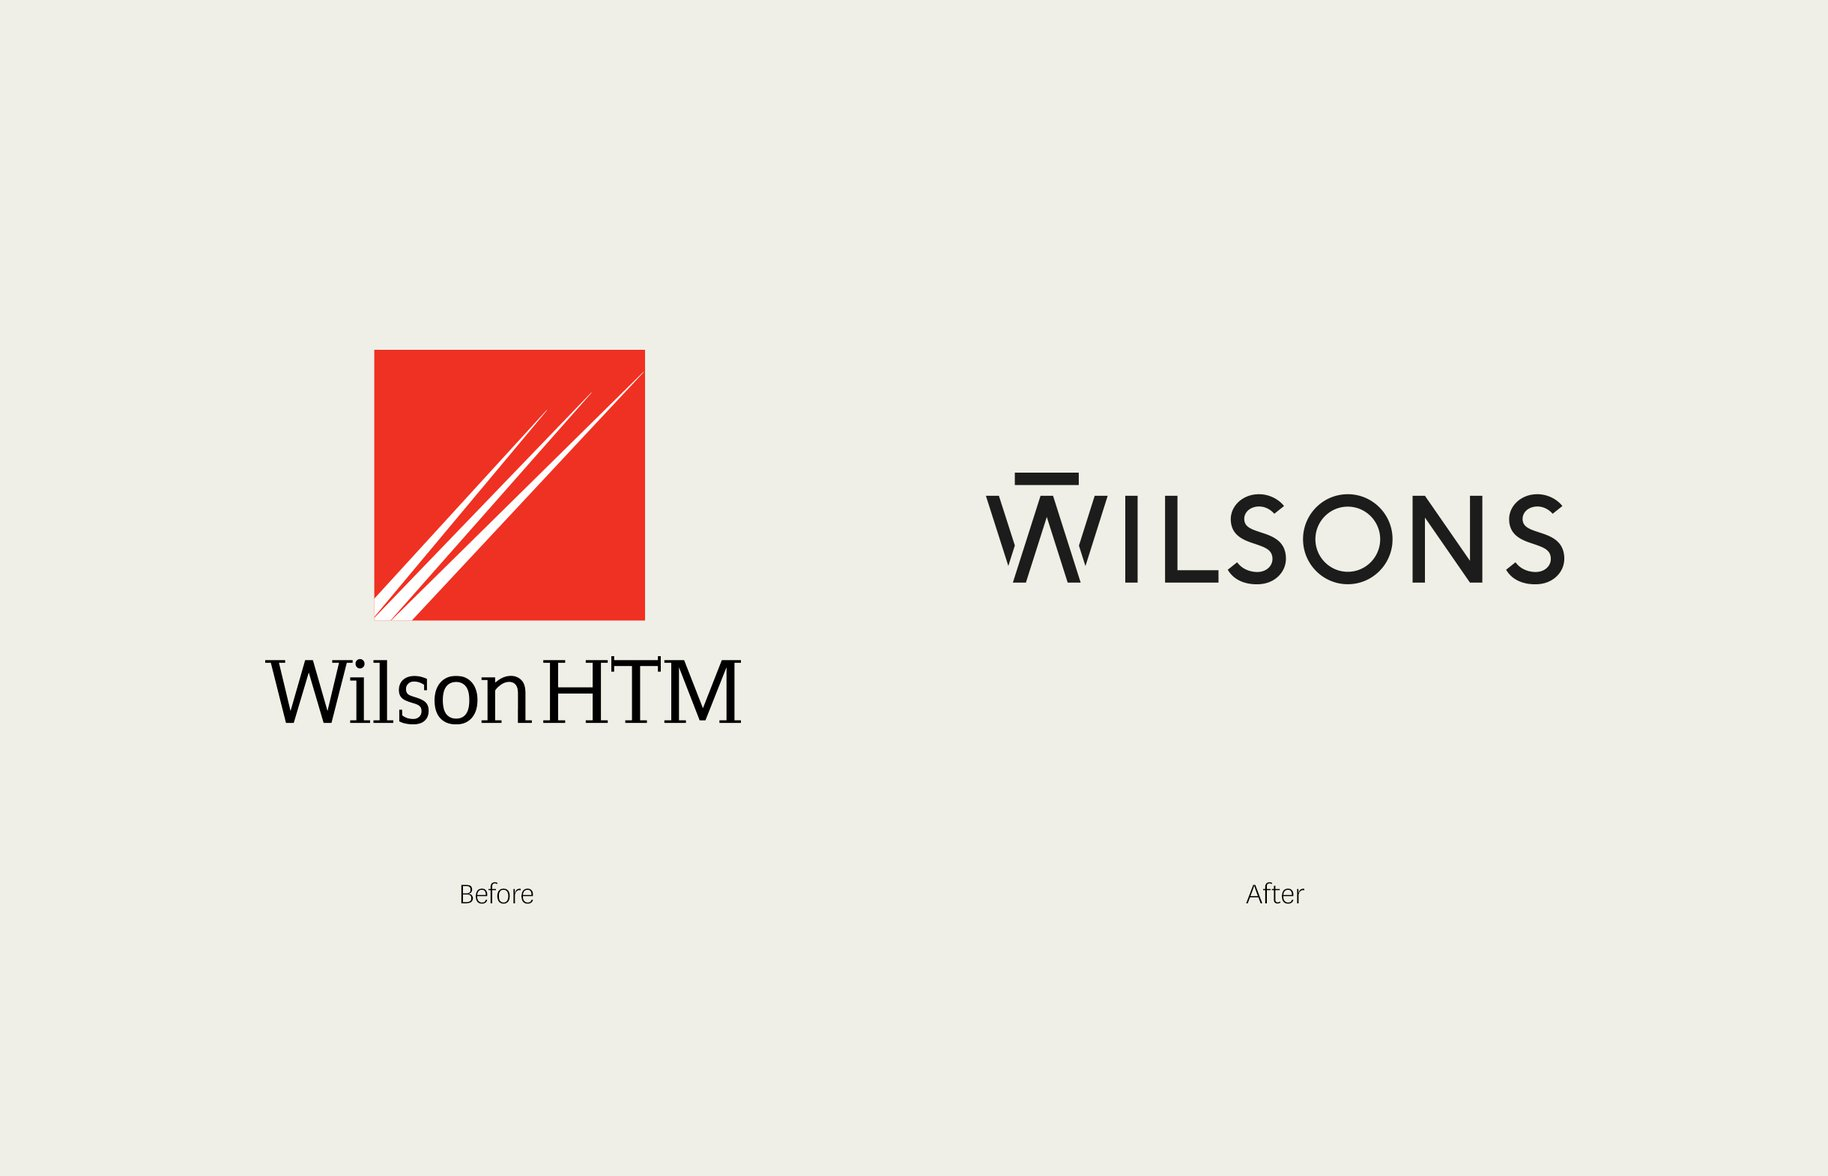 Wilsons Before & After Comparison